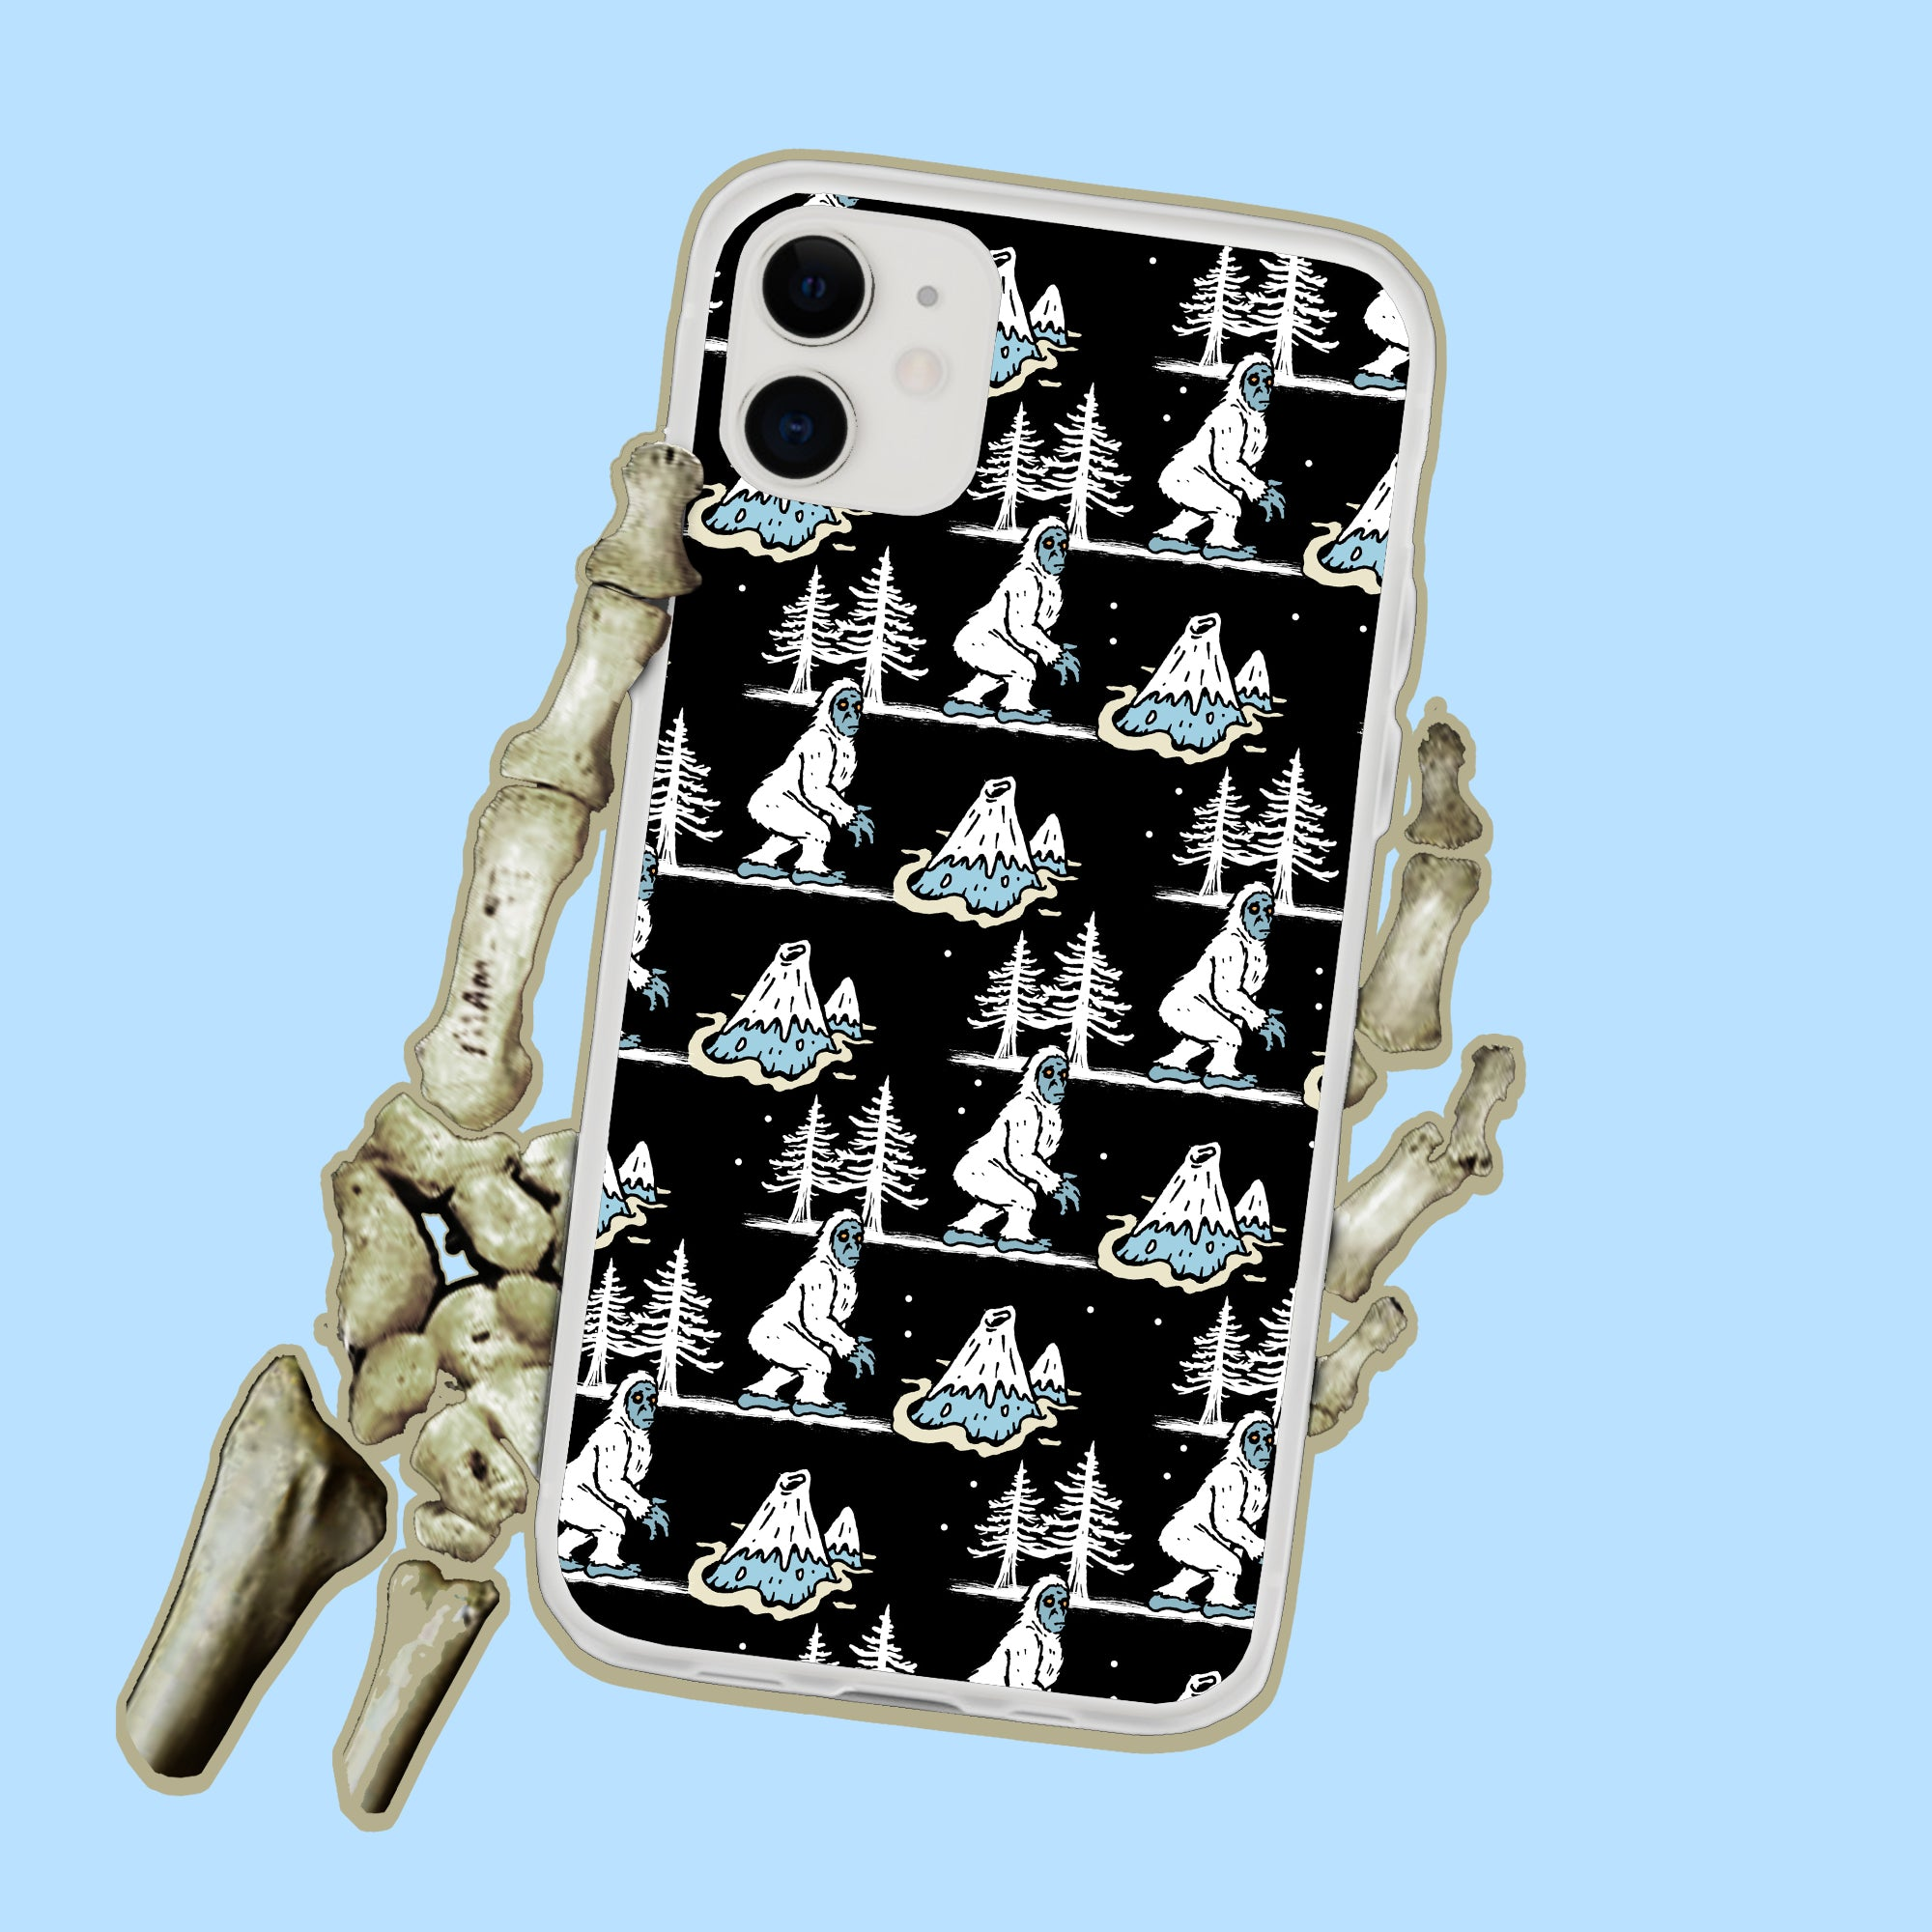 Yeti Abominable Snowman Christmas iPhone Case